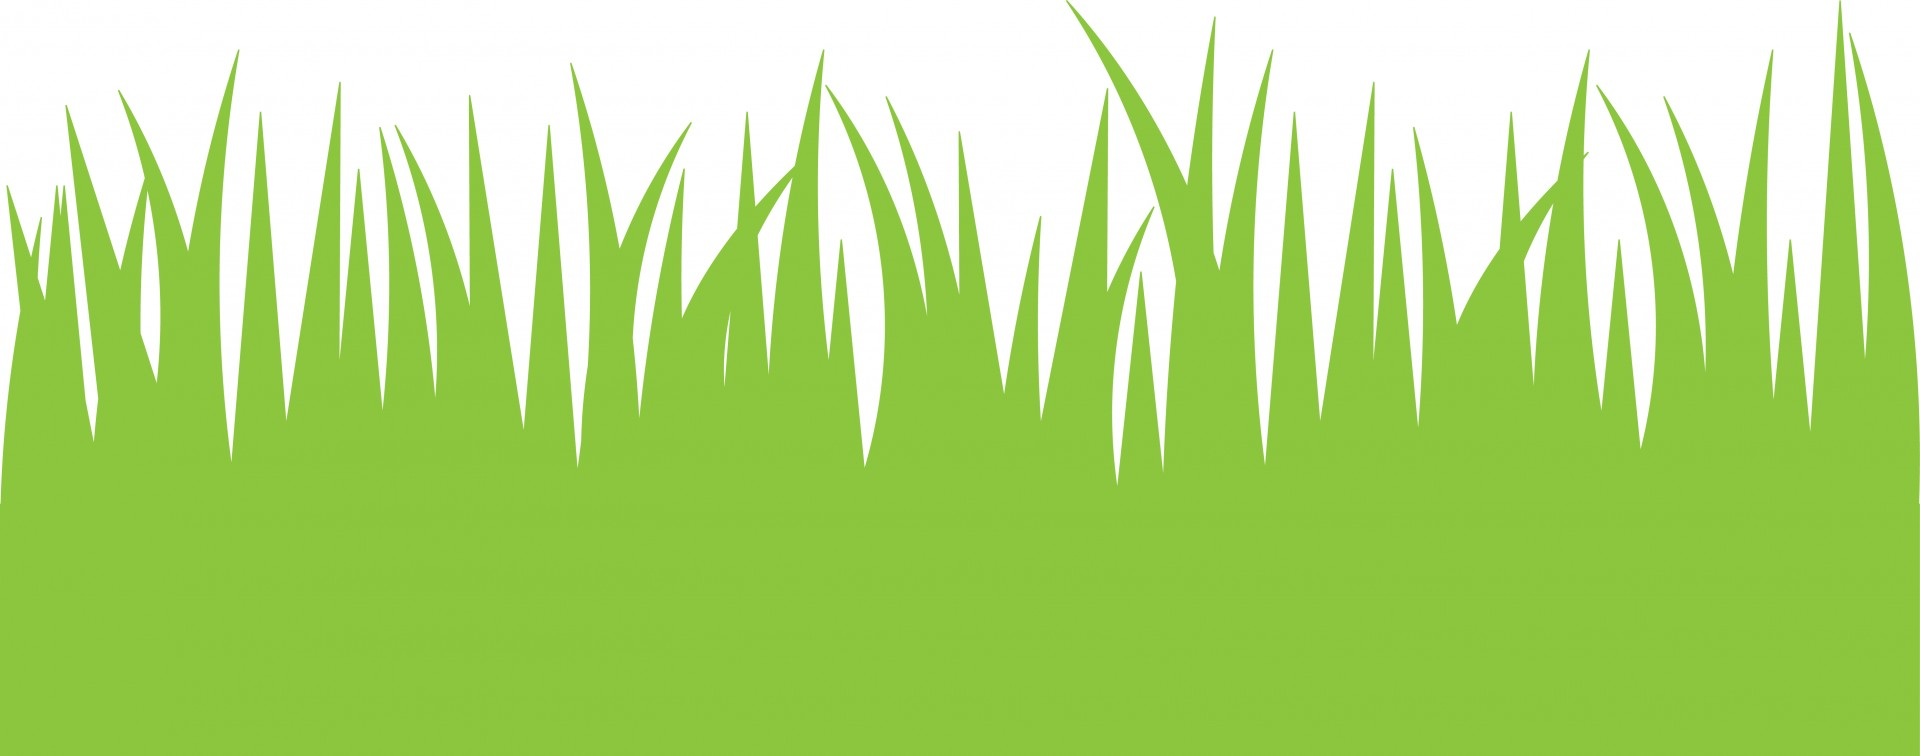 Green free stock photo. Clipart grass